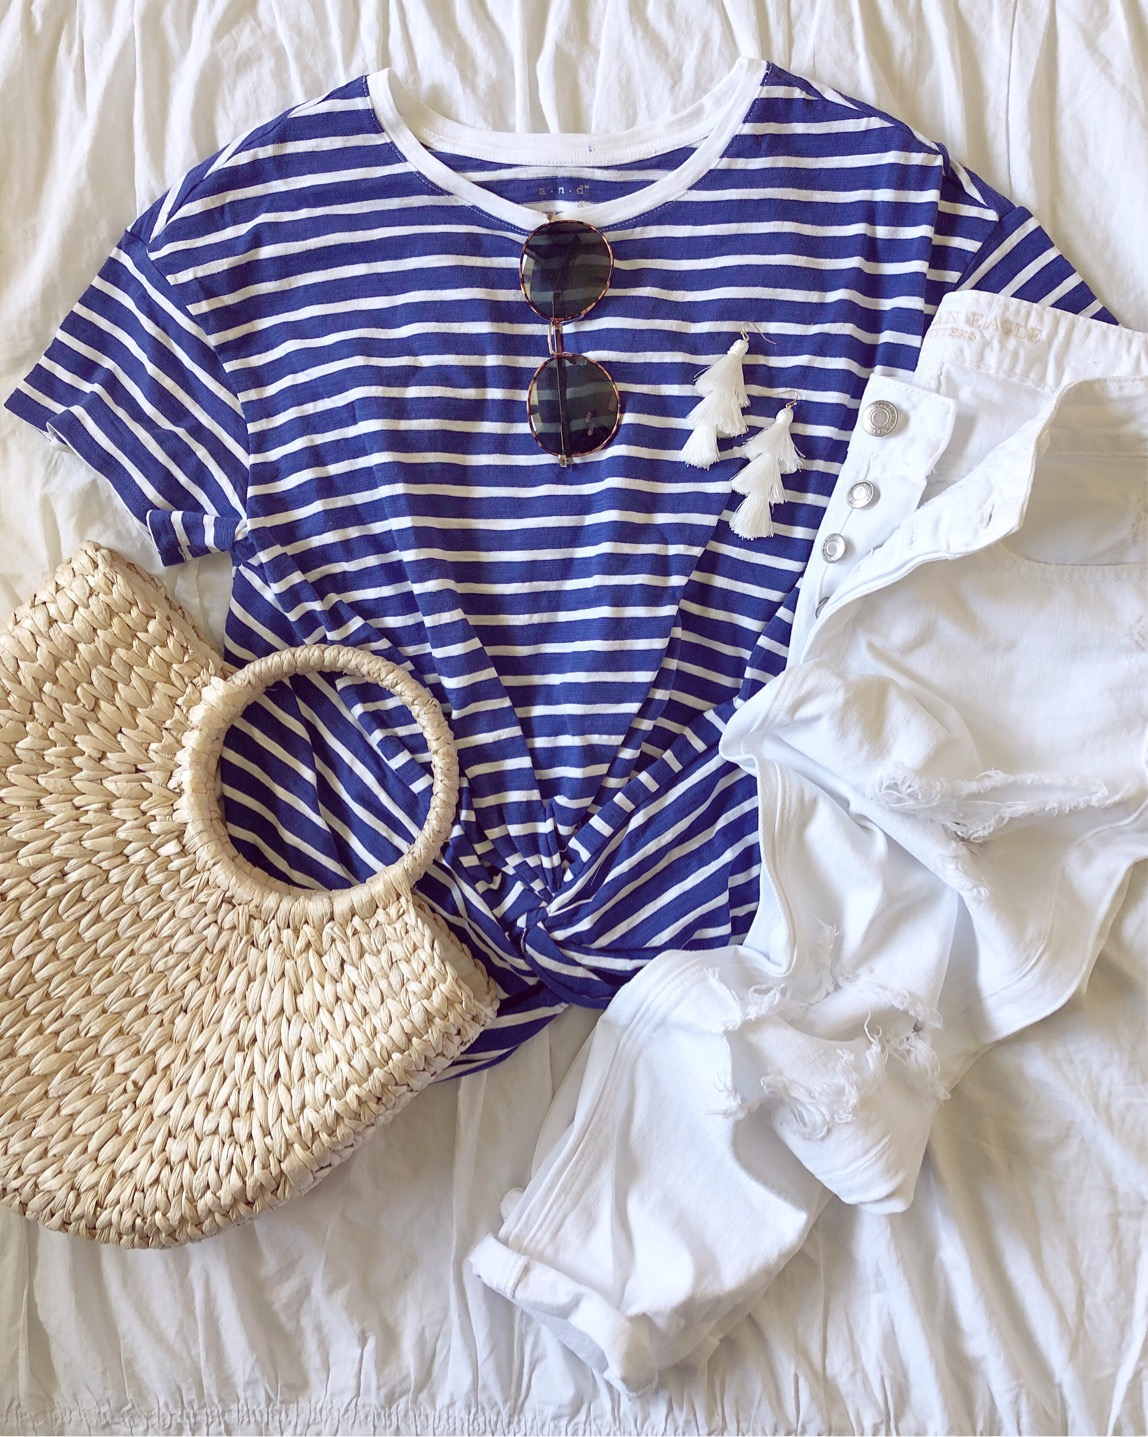 what to wear for the 4th of july, 4th of july outfit inspiration, white jeans and stripes